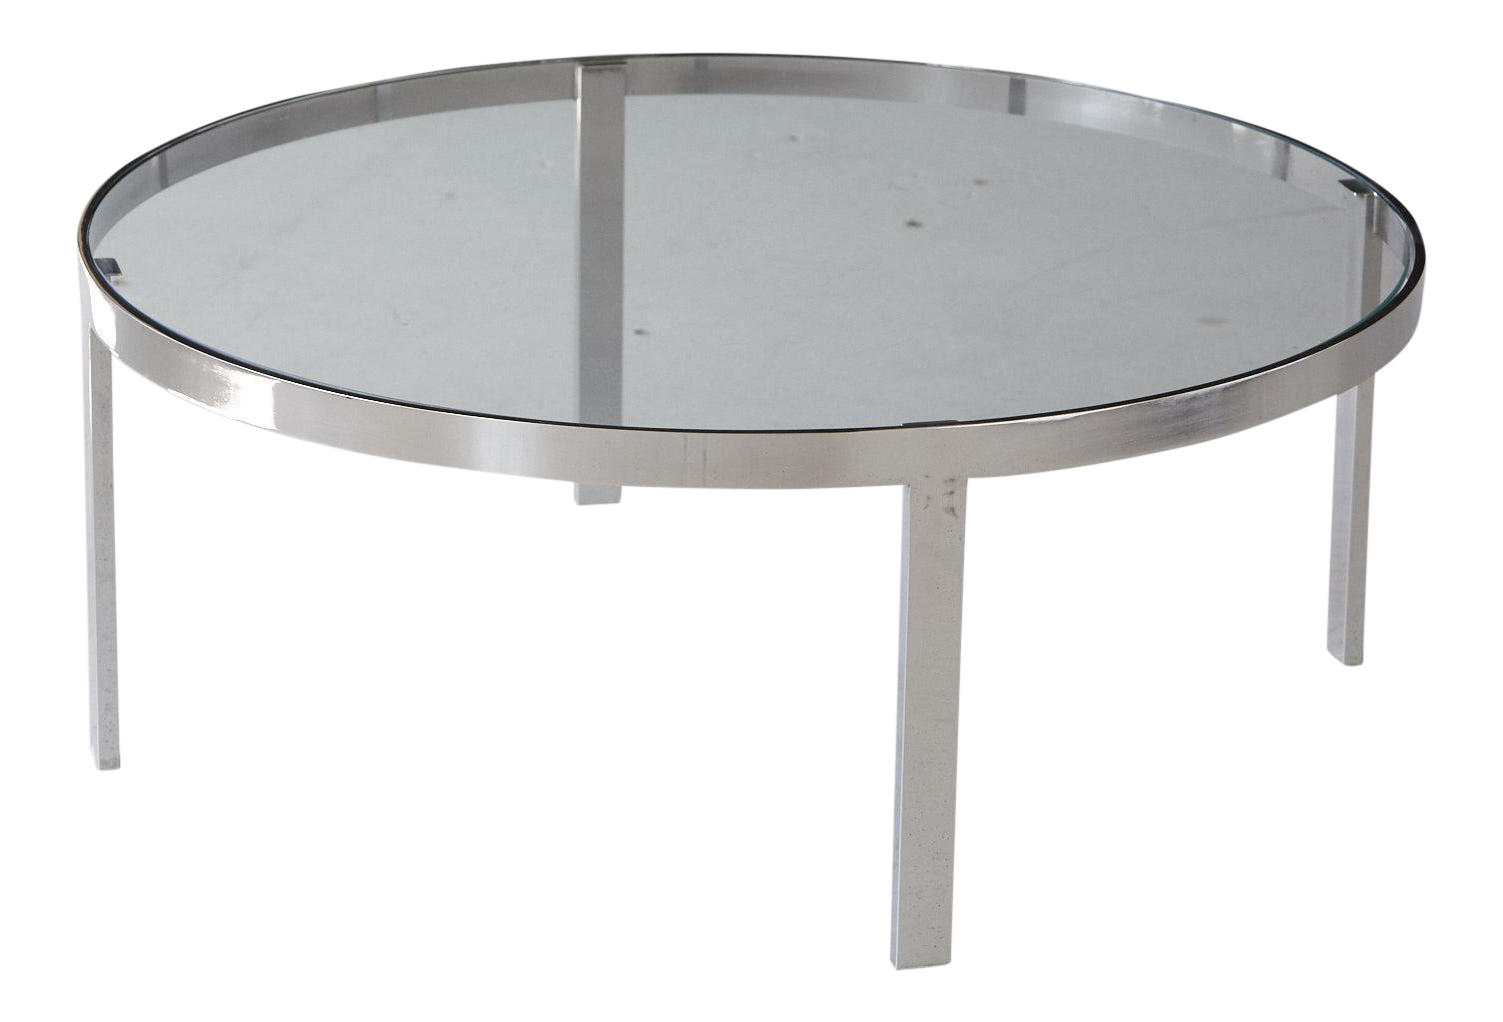 Exquisite Milo Baughman Round Chrome and Glass Coffee Table DECASO